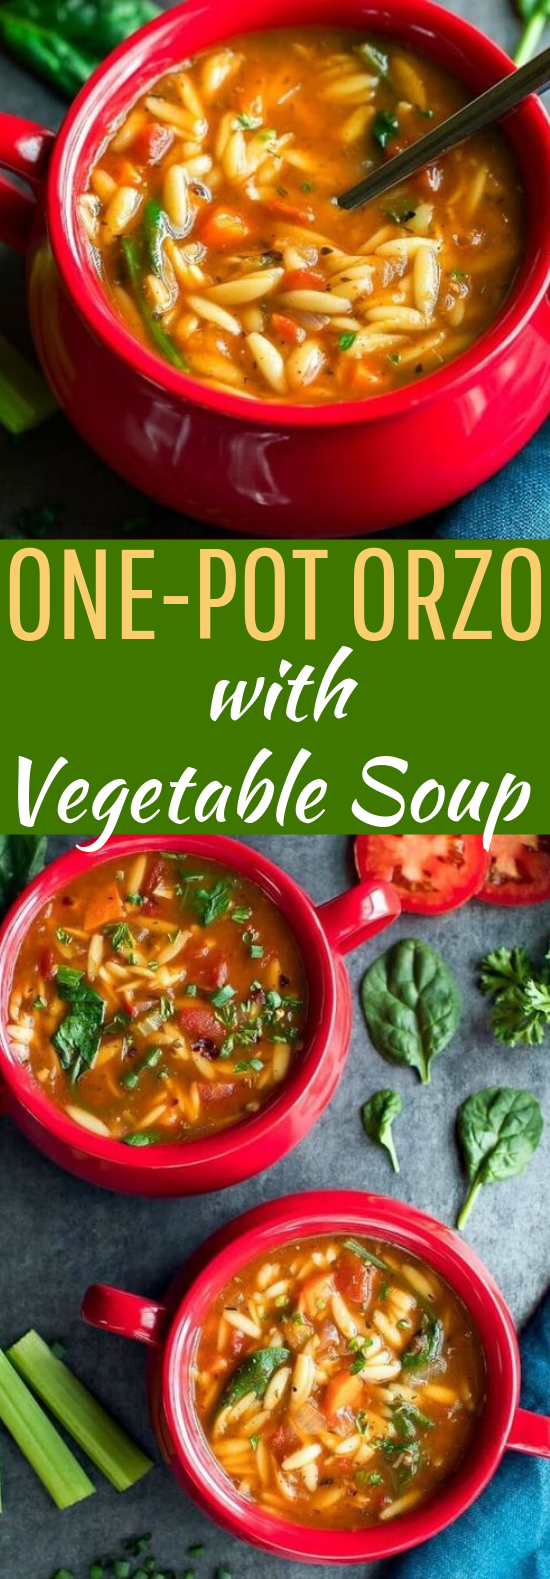 One-Pot Orzo Vegetable Soup #vegetarian #soup